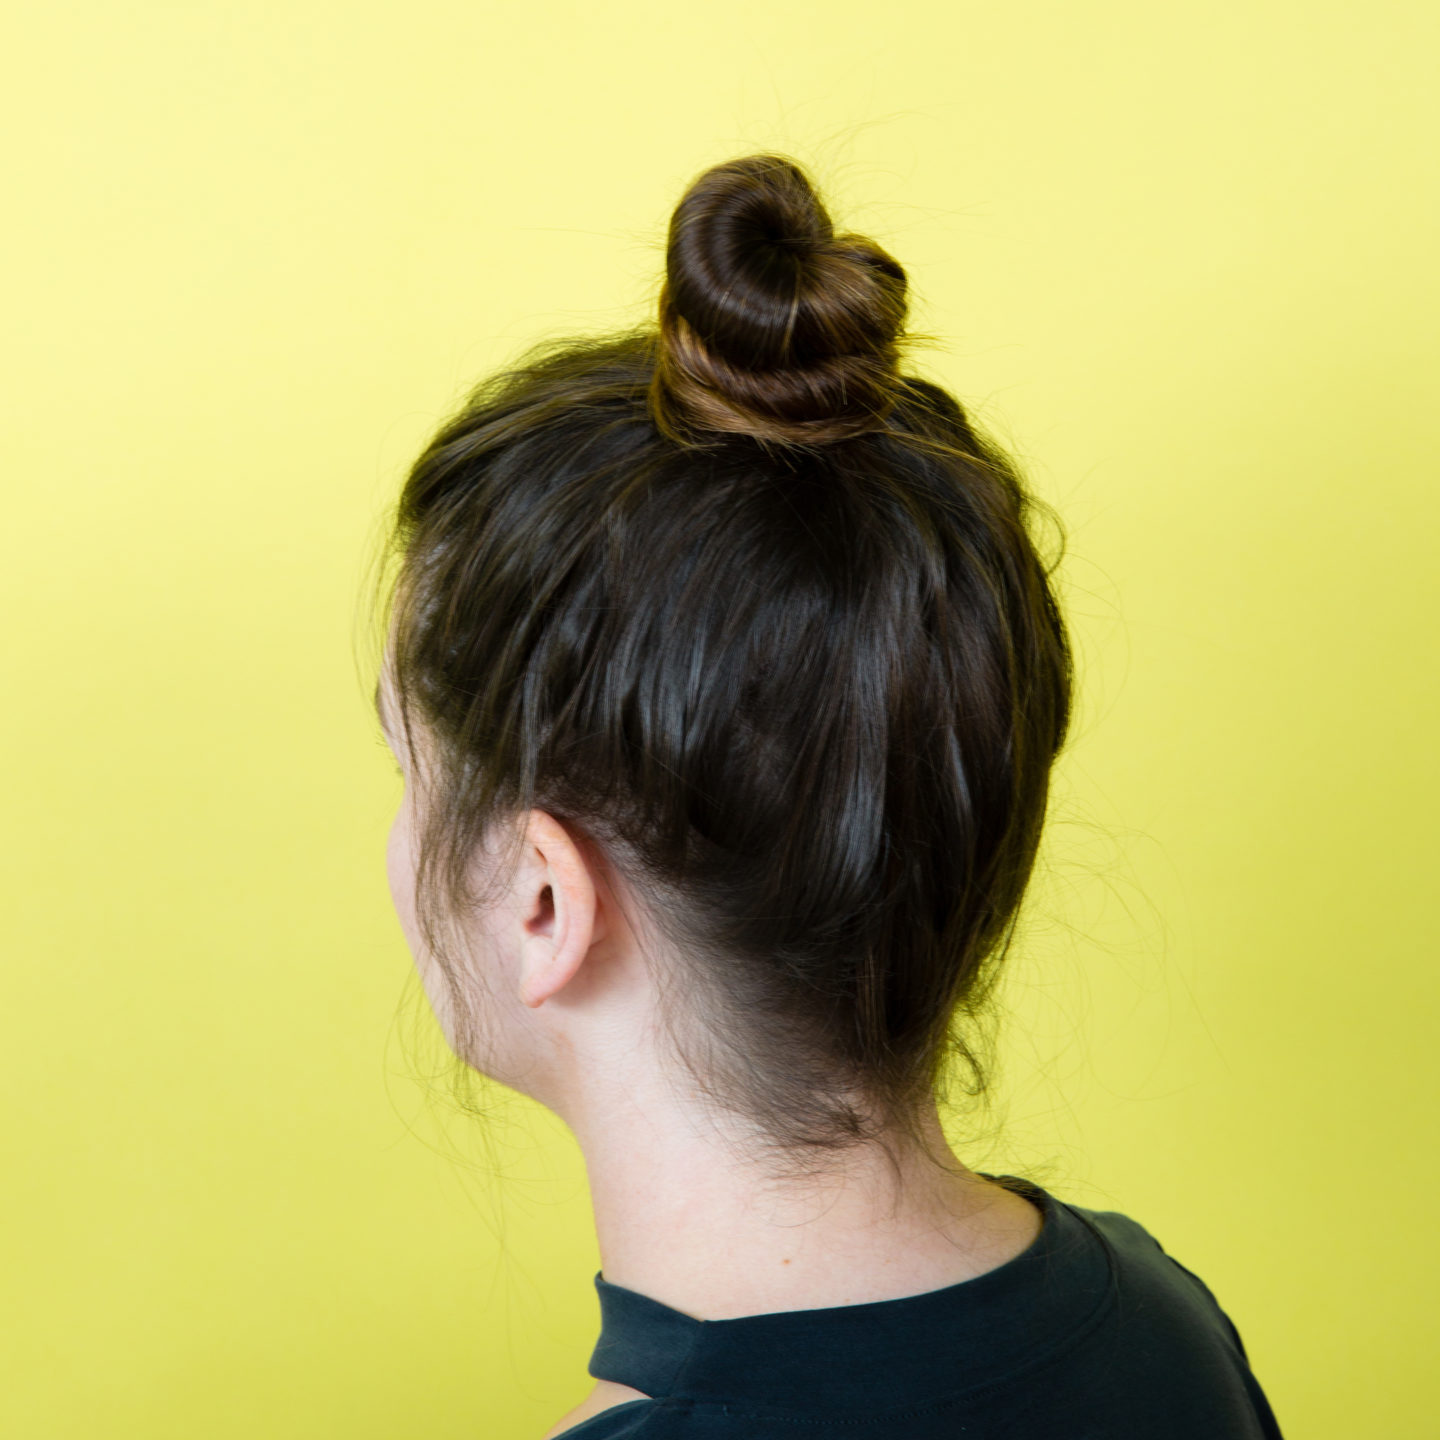 easy hairstyles any busy (or lazy) woman can handle | aisle9